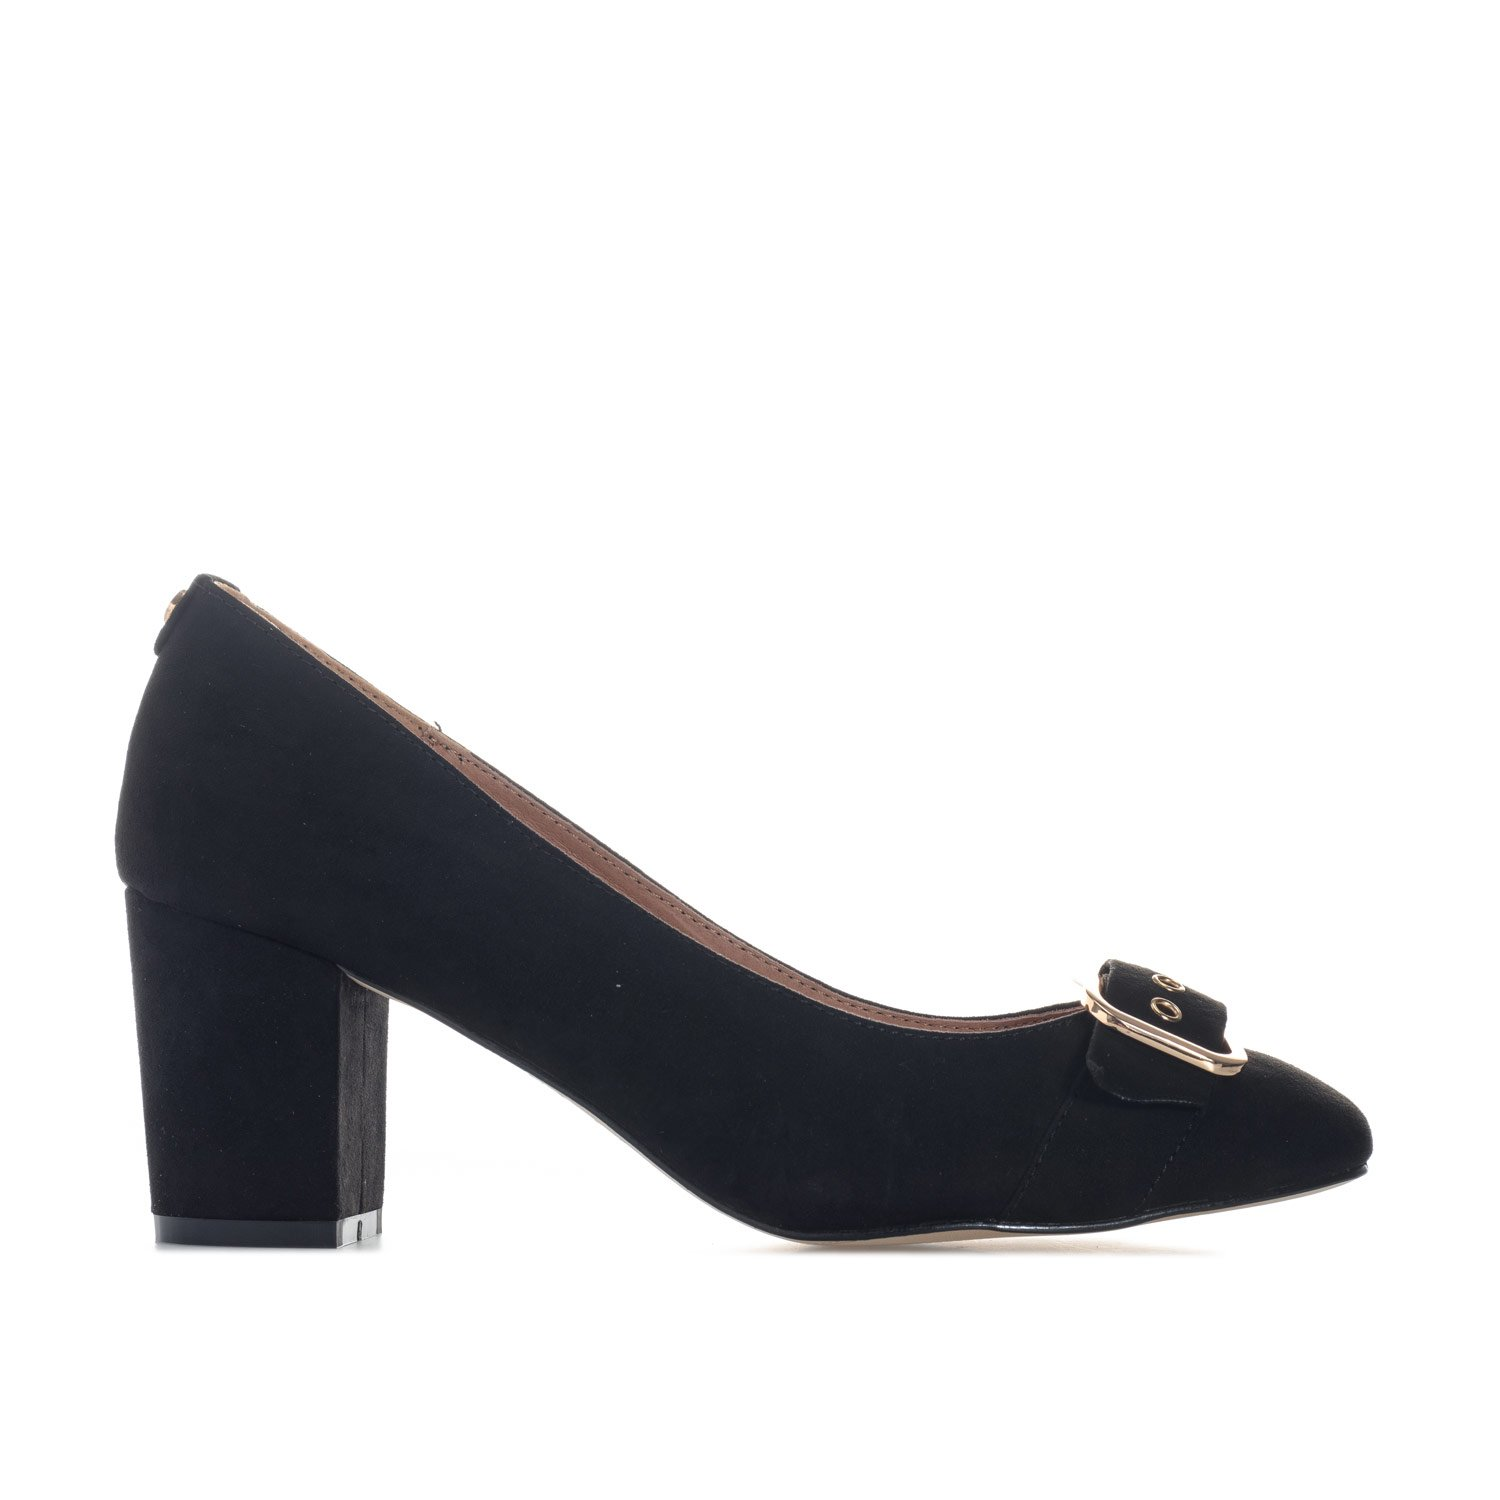 4d756a4d2fad Ravel Womens Hingham Block Heeled Court Shoes in Black  Amazon.co.uk  Shoes    Bags